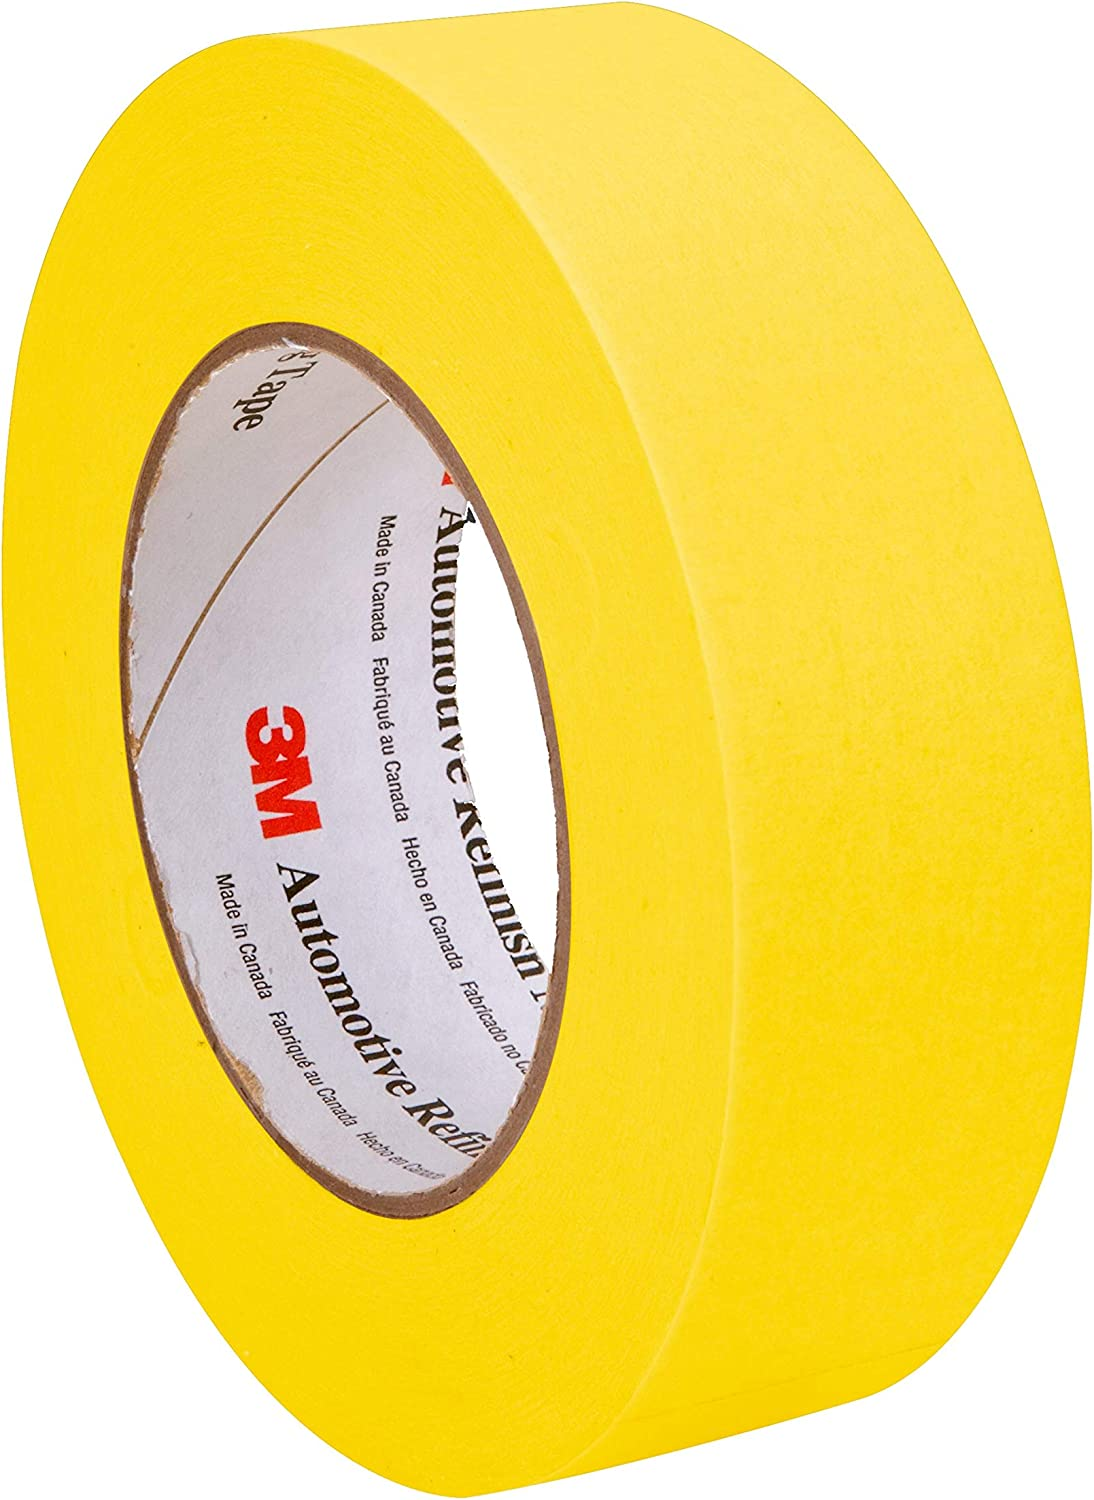 """Image of 3m 301+ Masking Tape 1.5"""" (one and a half inch)"""